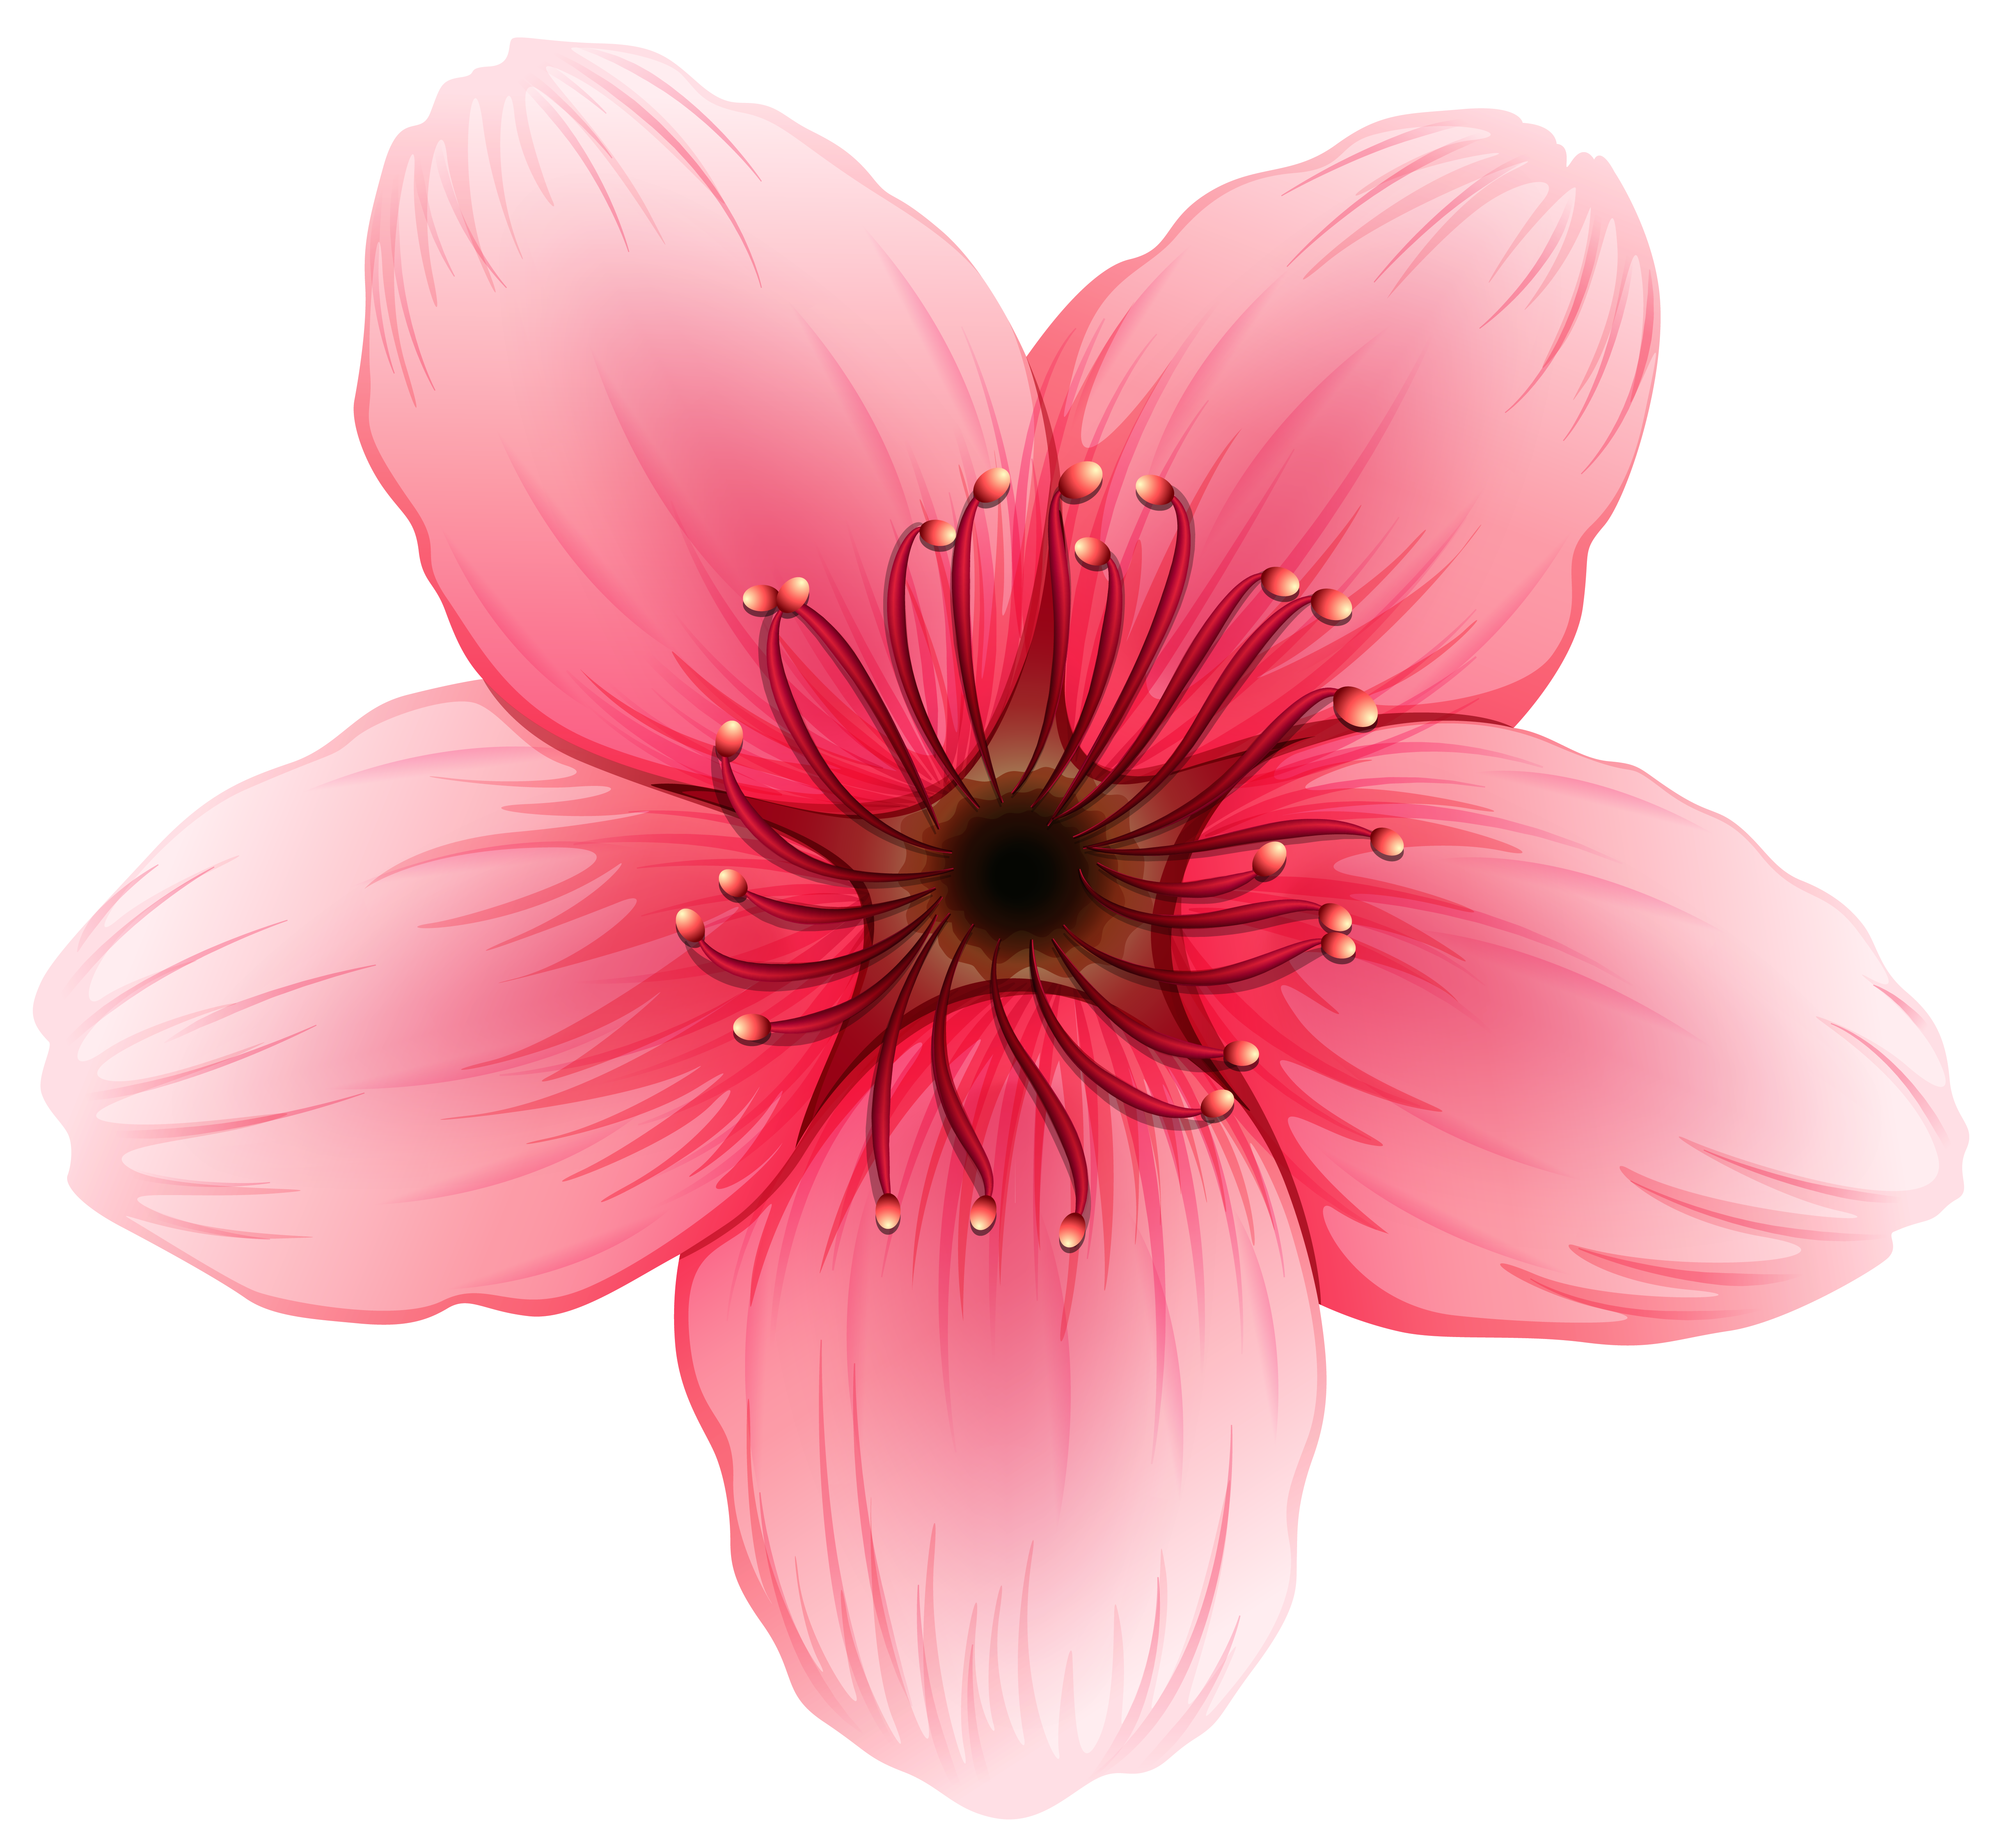 Flower PNG Clipart Image.